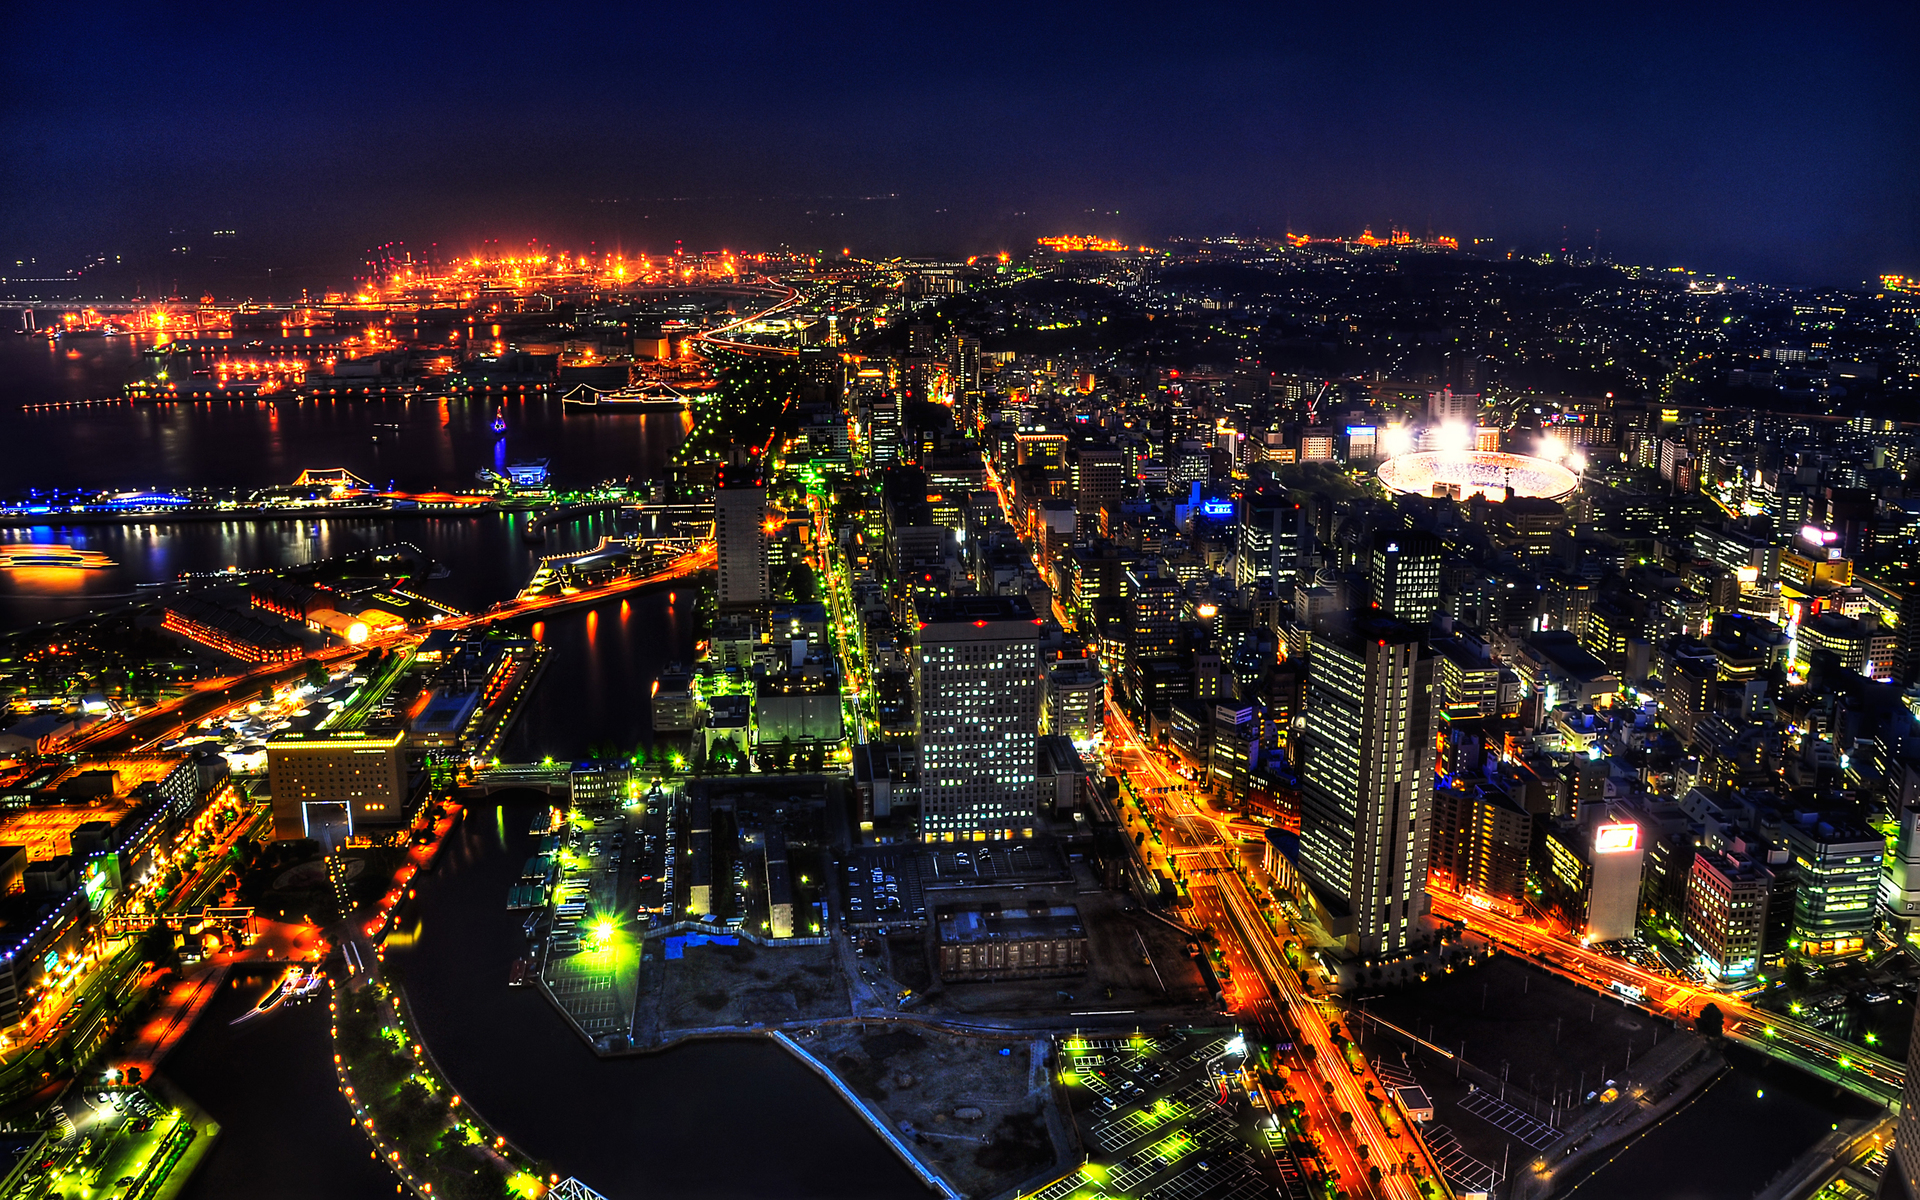 Tokyo japan hd wallpaper background image 1920x1200 id 297751 wallpaper abyss - Tokyo japan wallpaper ...